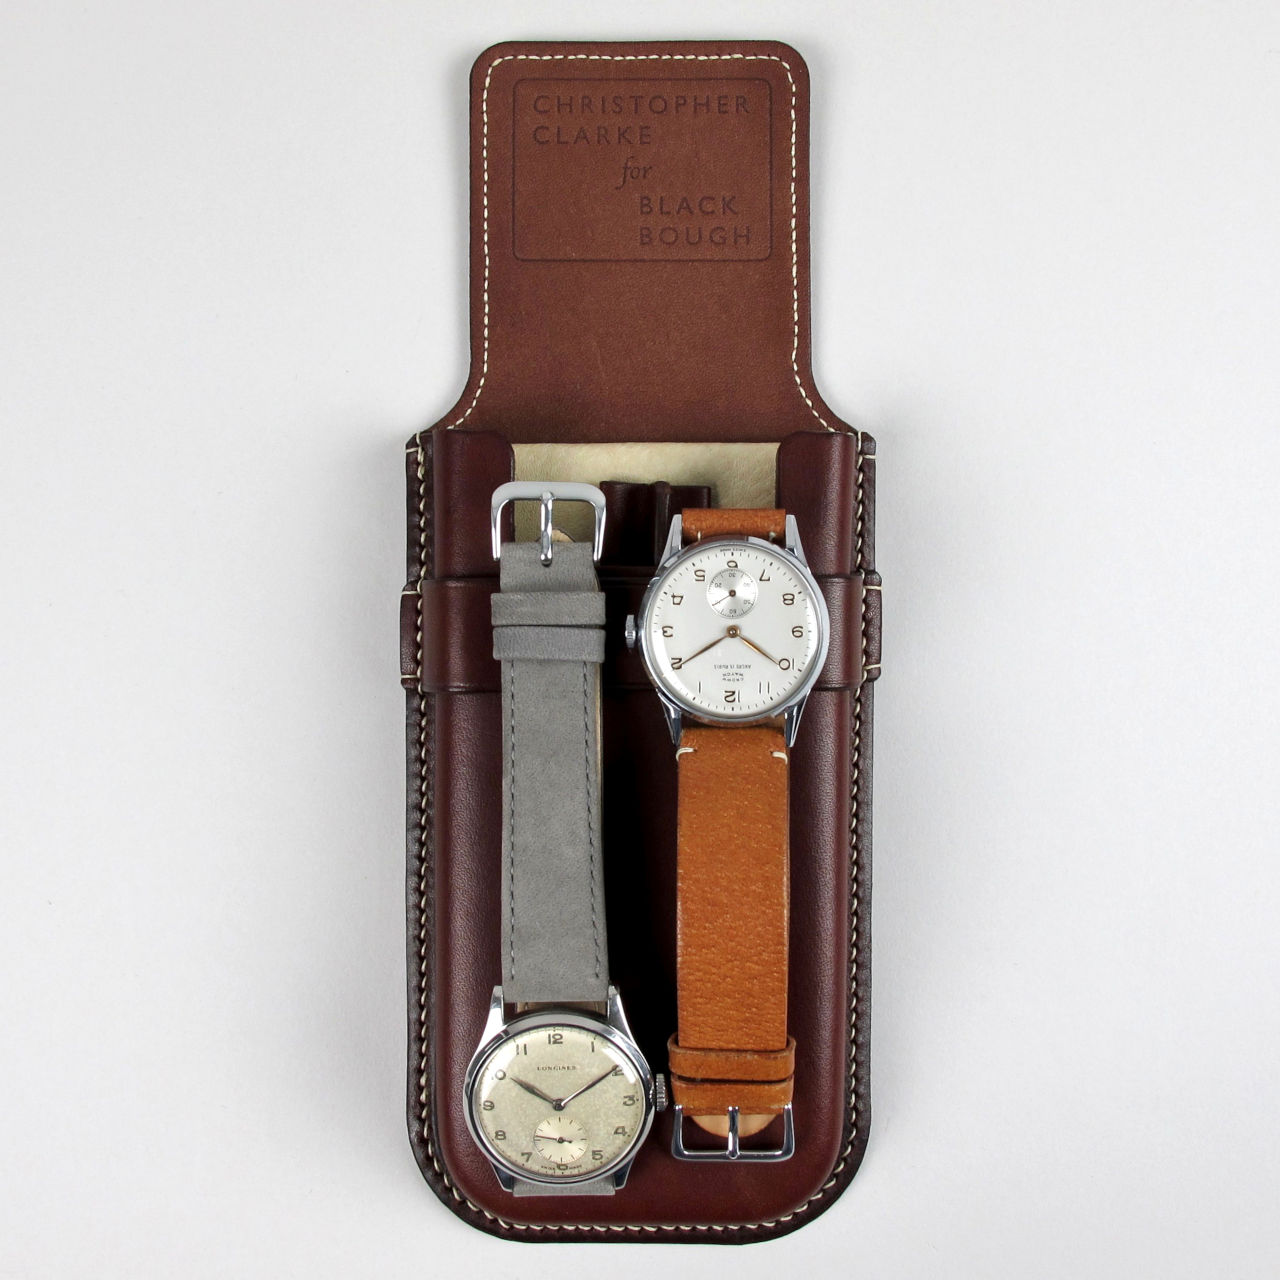 Bespoke handmade leather watch case for one or two wristwatches